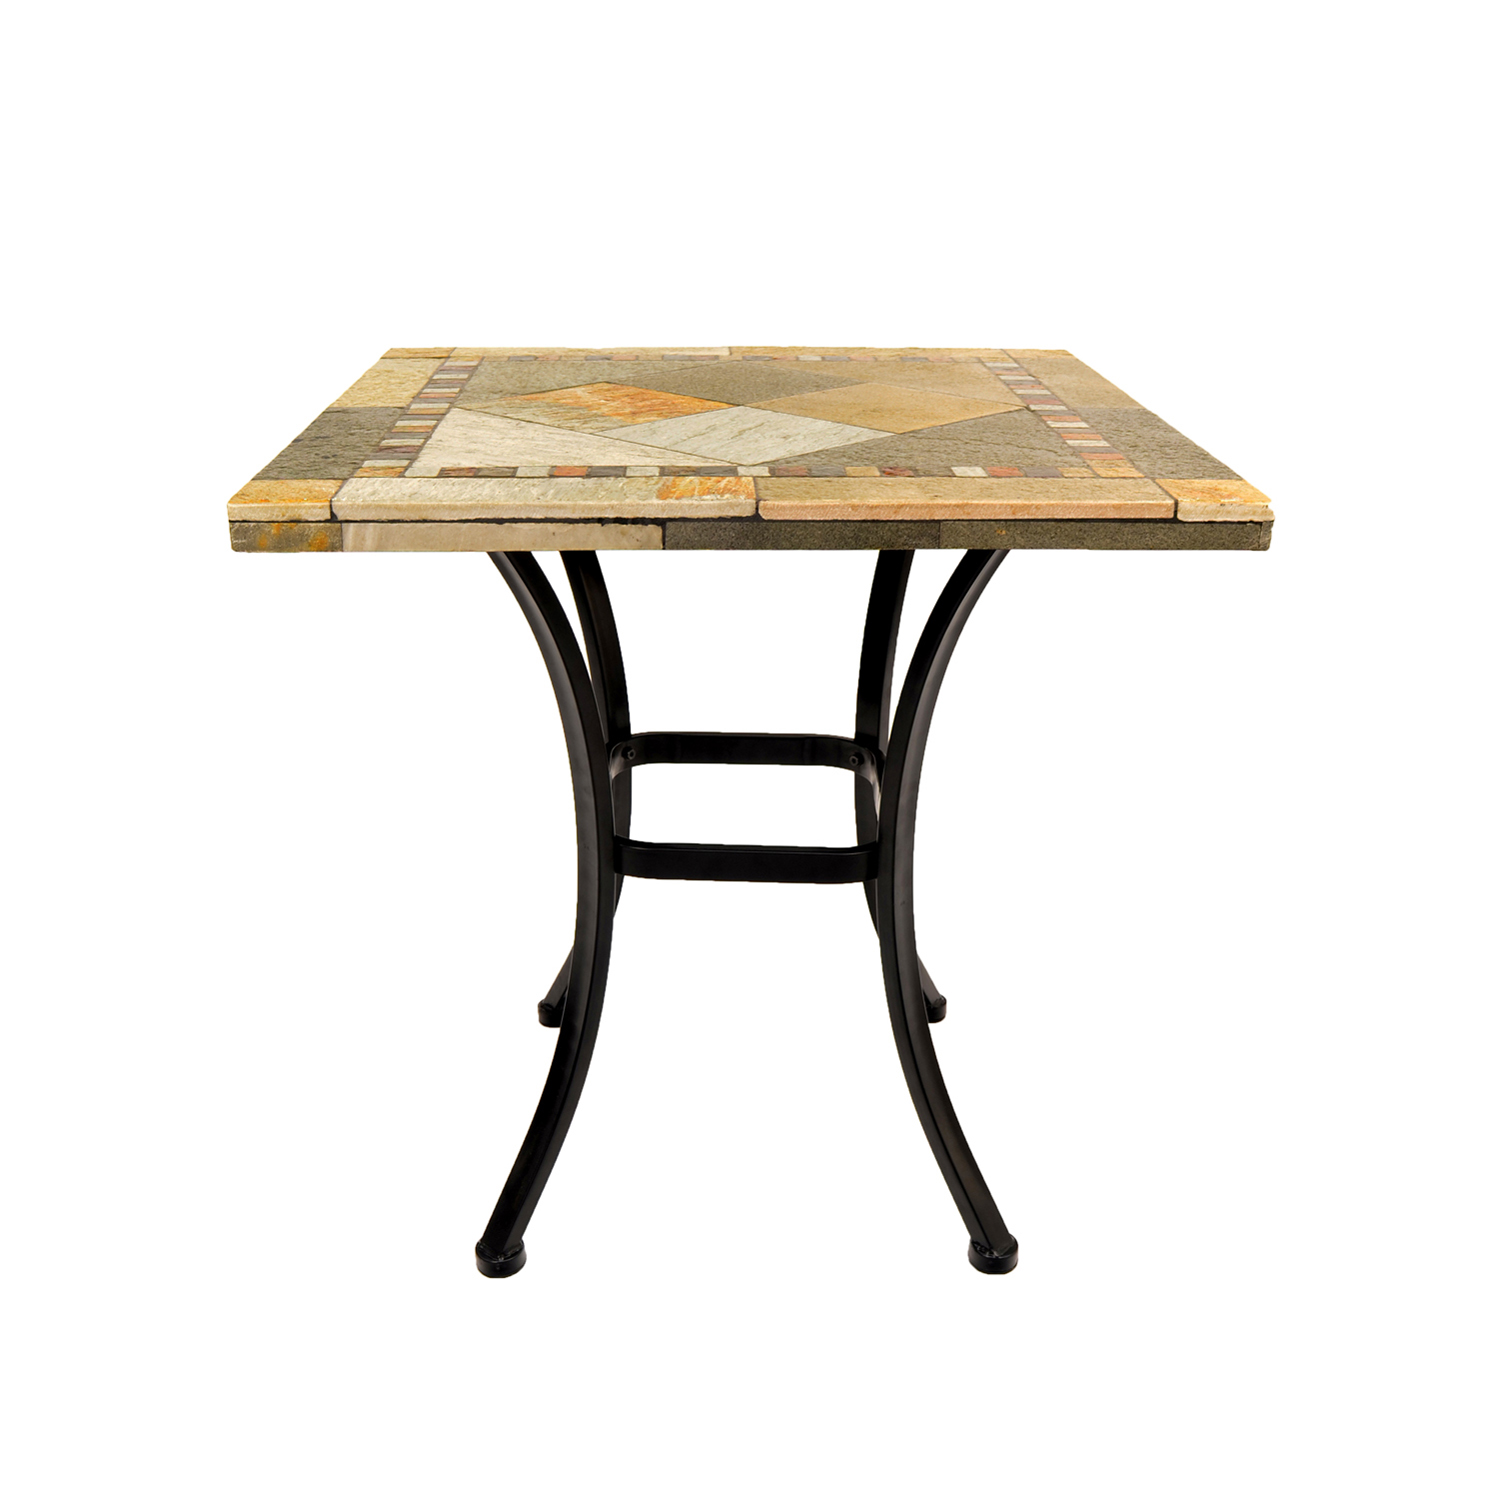 Vinaros square table